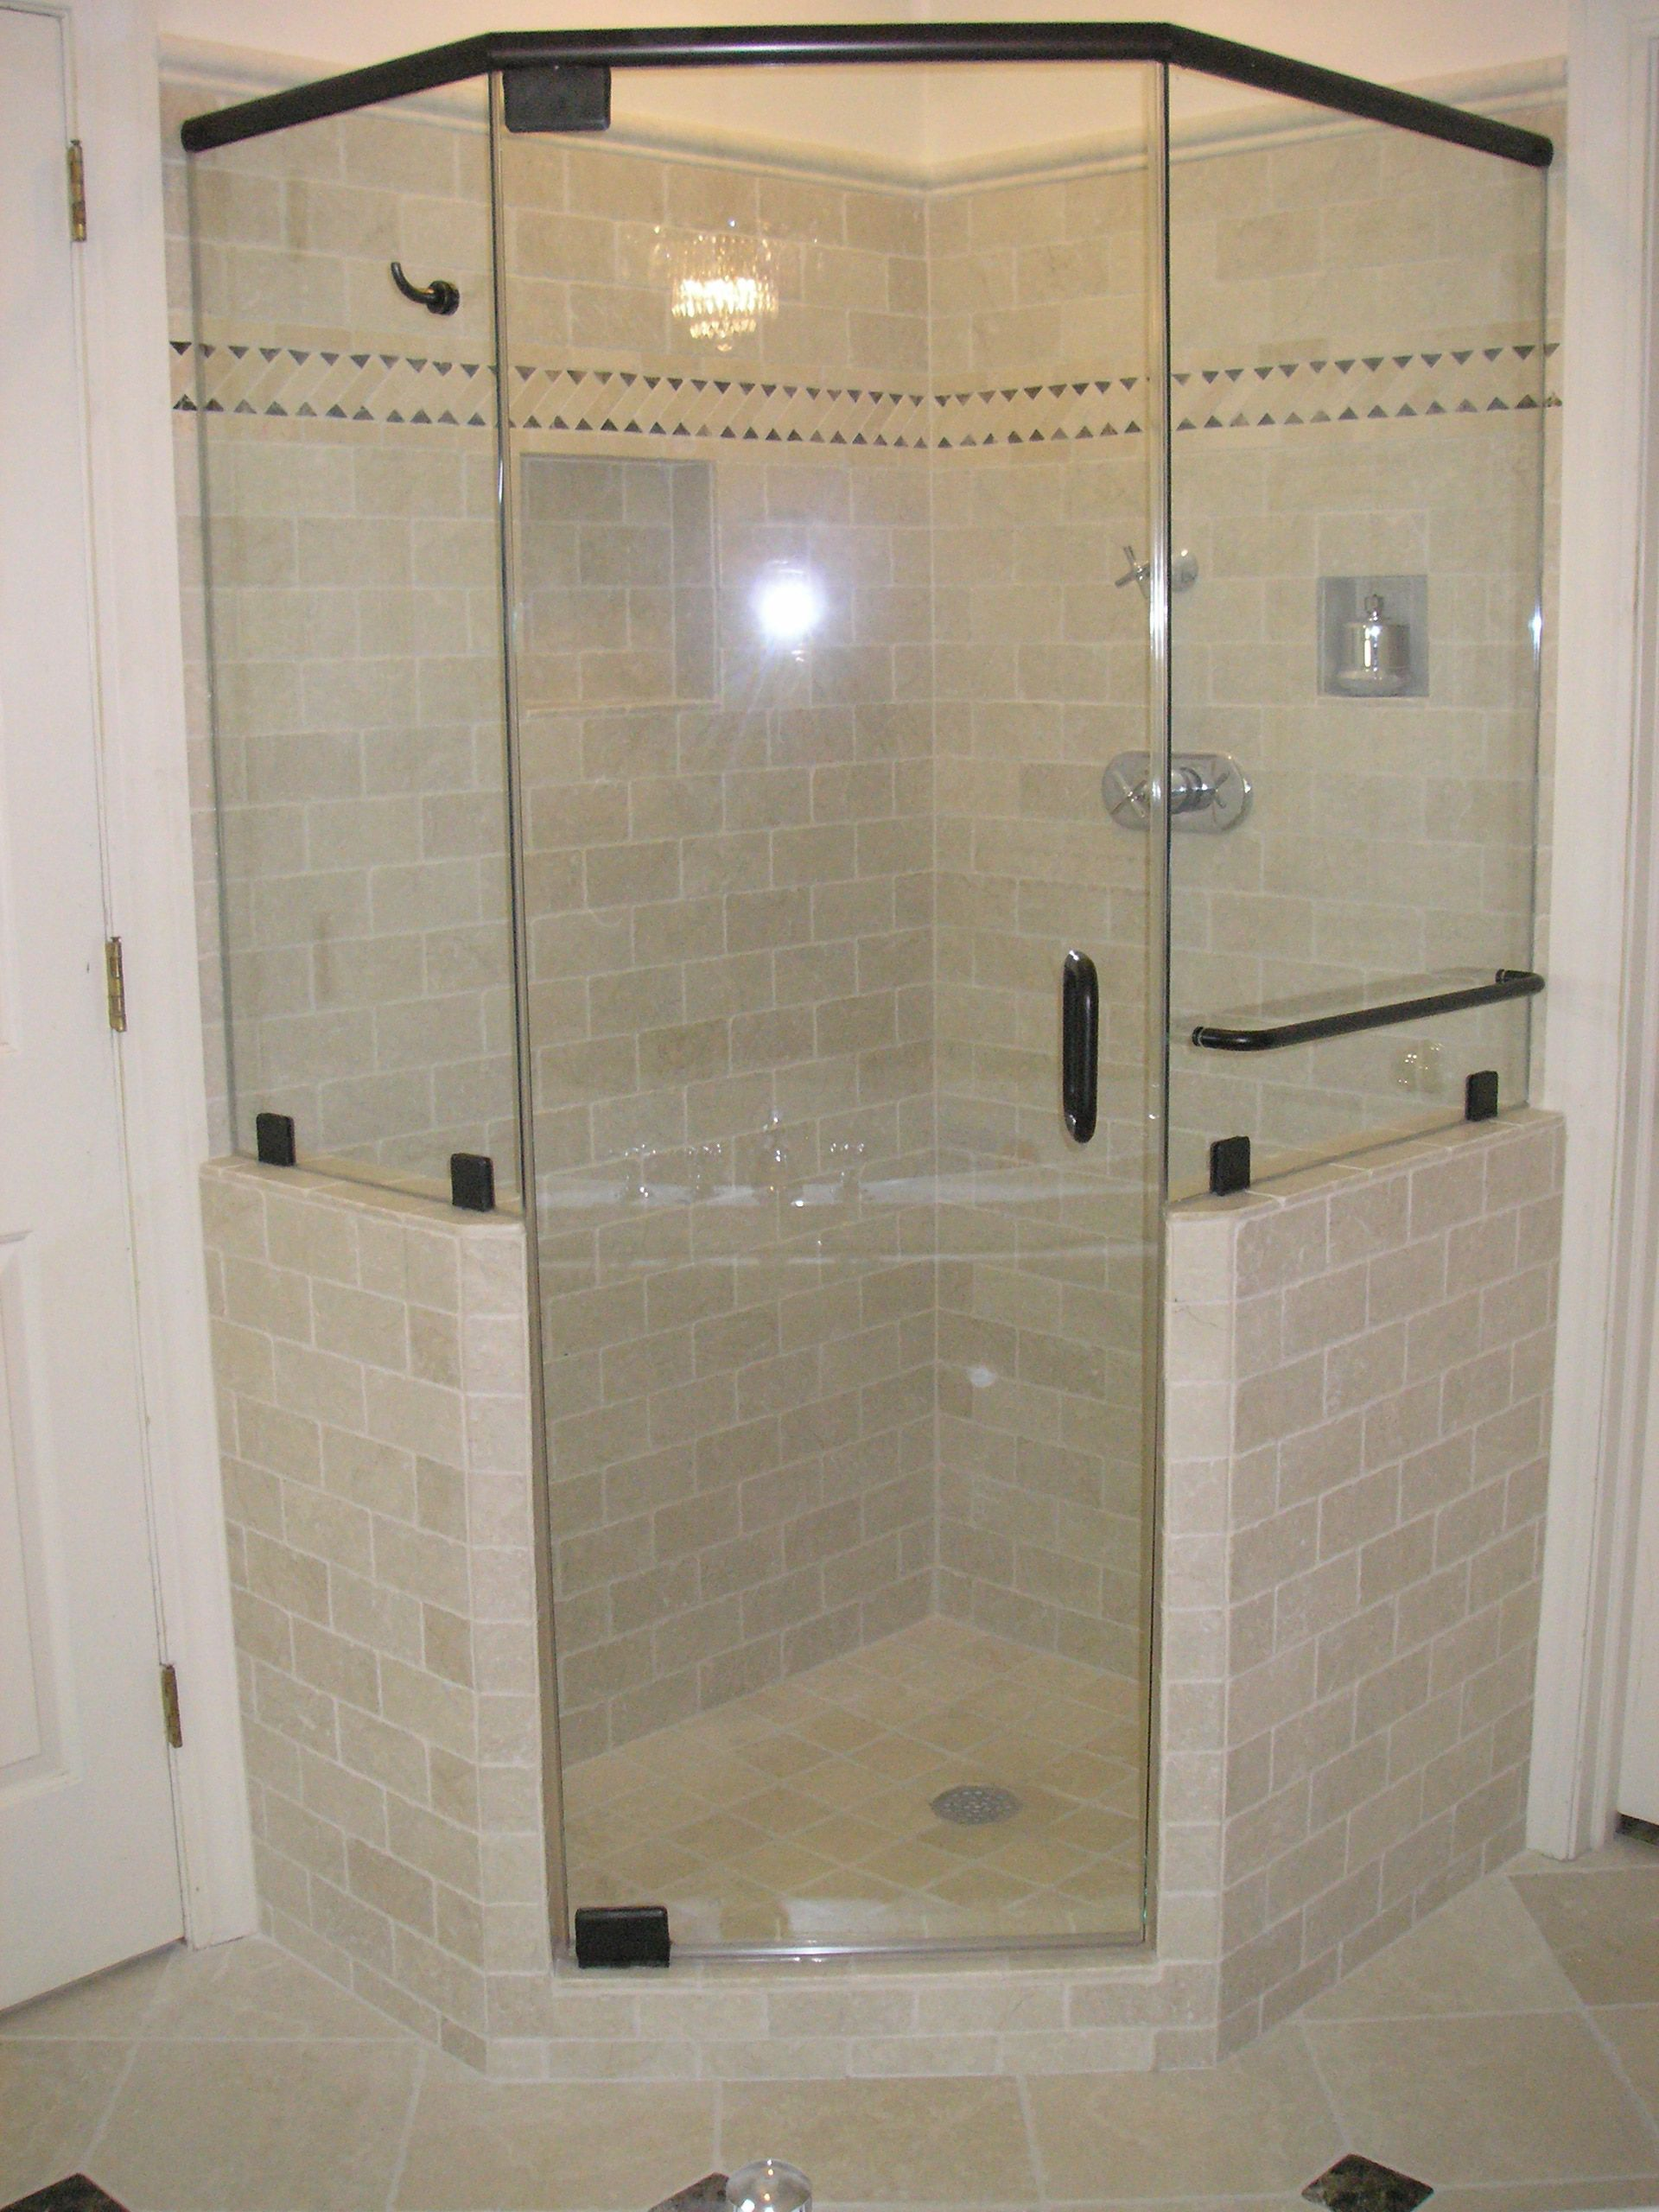 Frameless Quadrant Shower Enclosure Have More Elegant Look Than